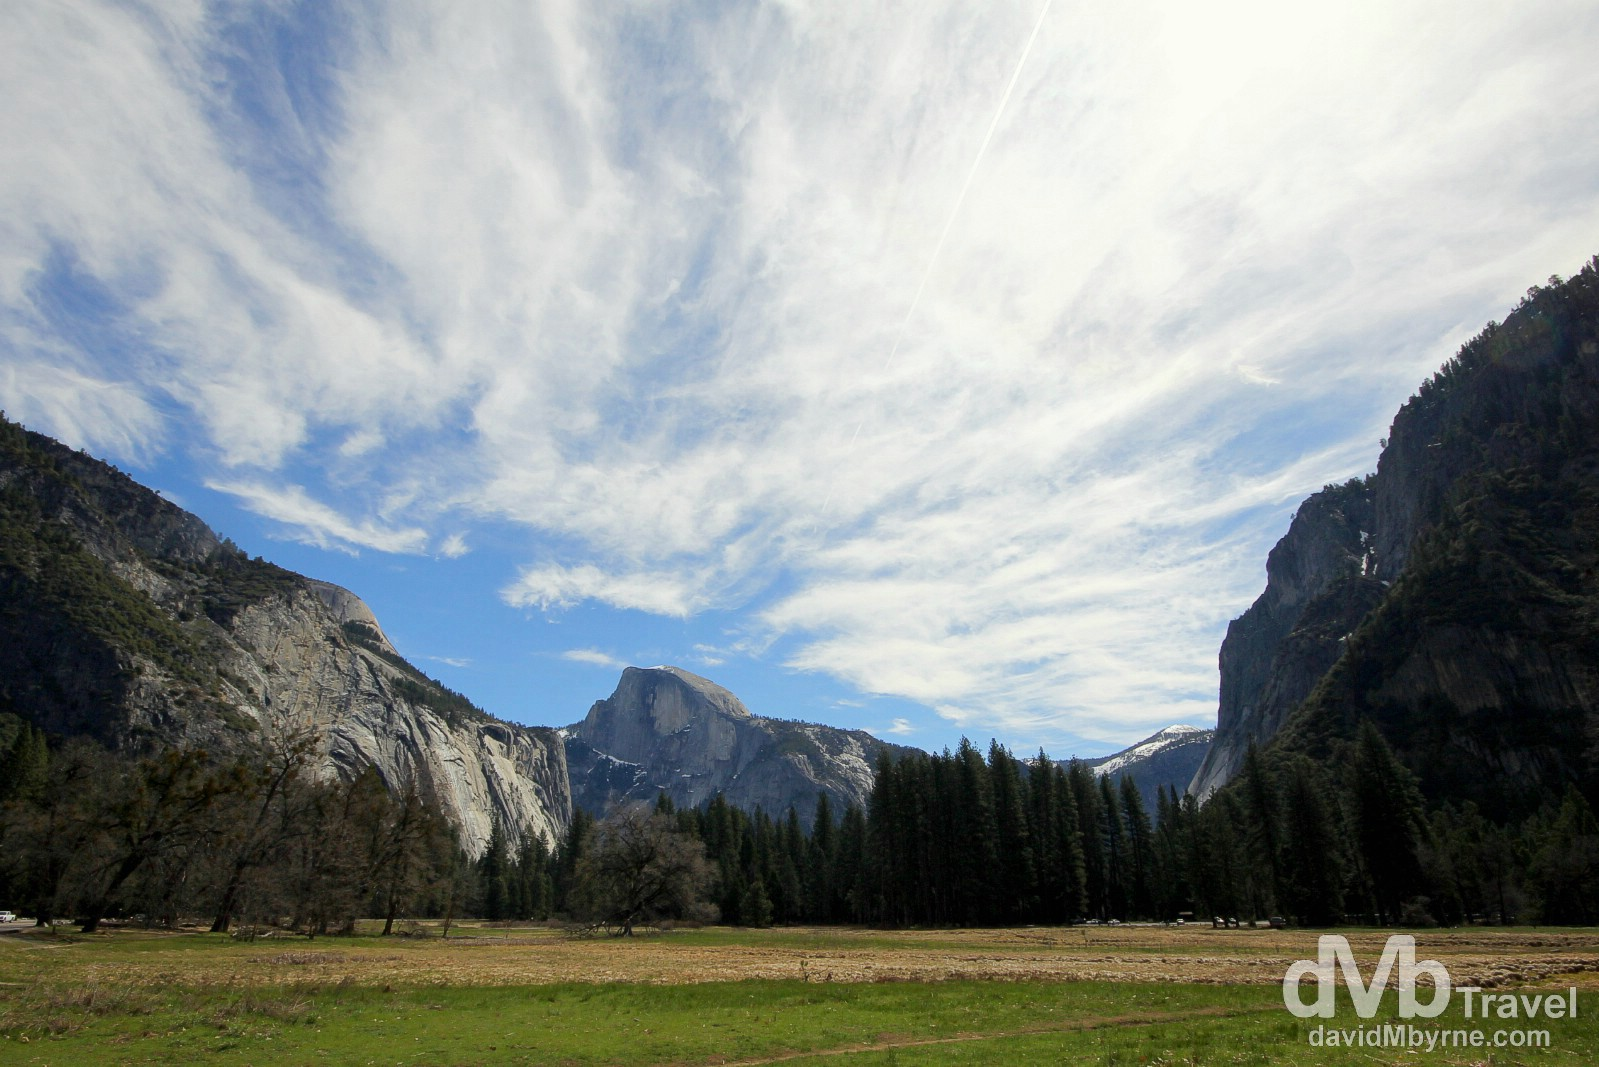 Yosemite Valley, Yosemite National Park, California, USA. April 2nd 2013.